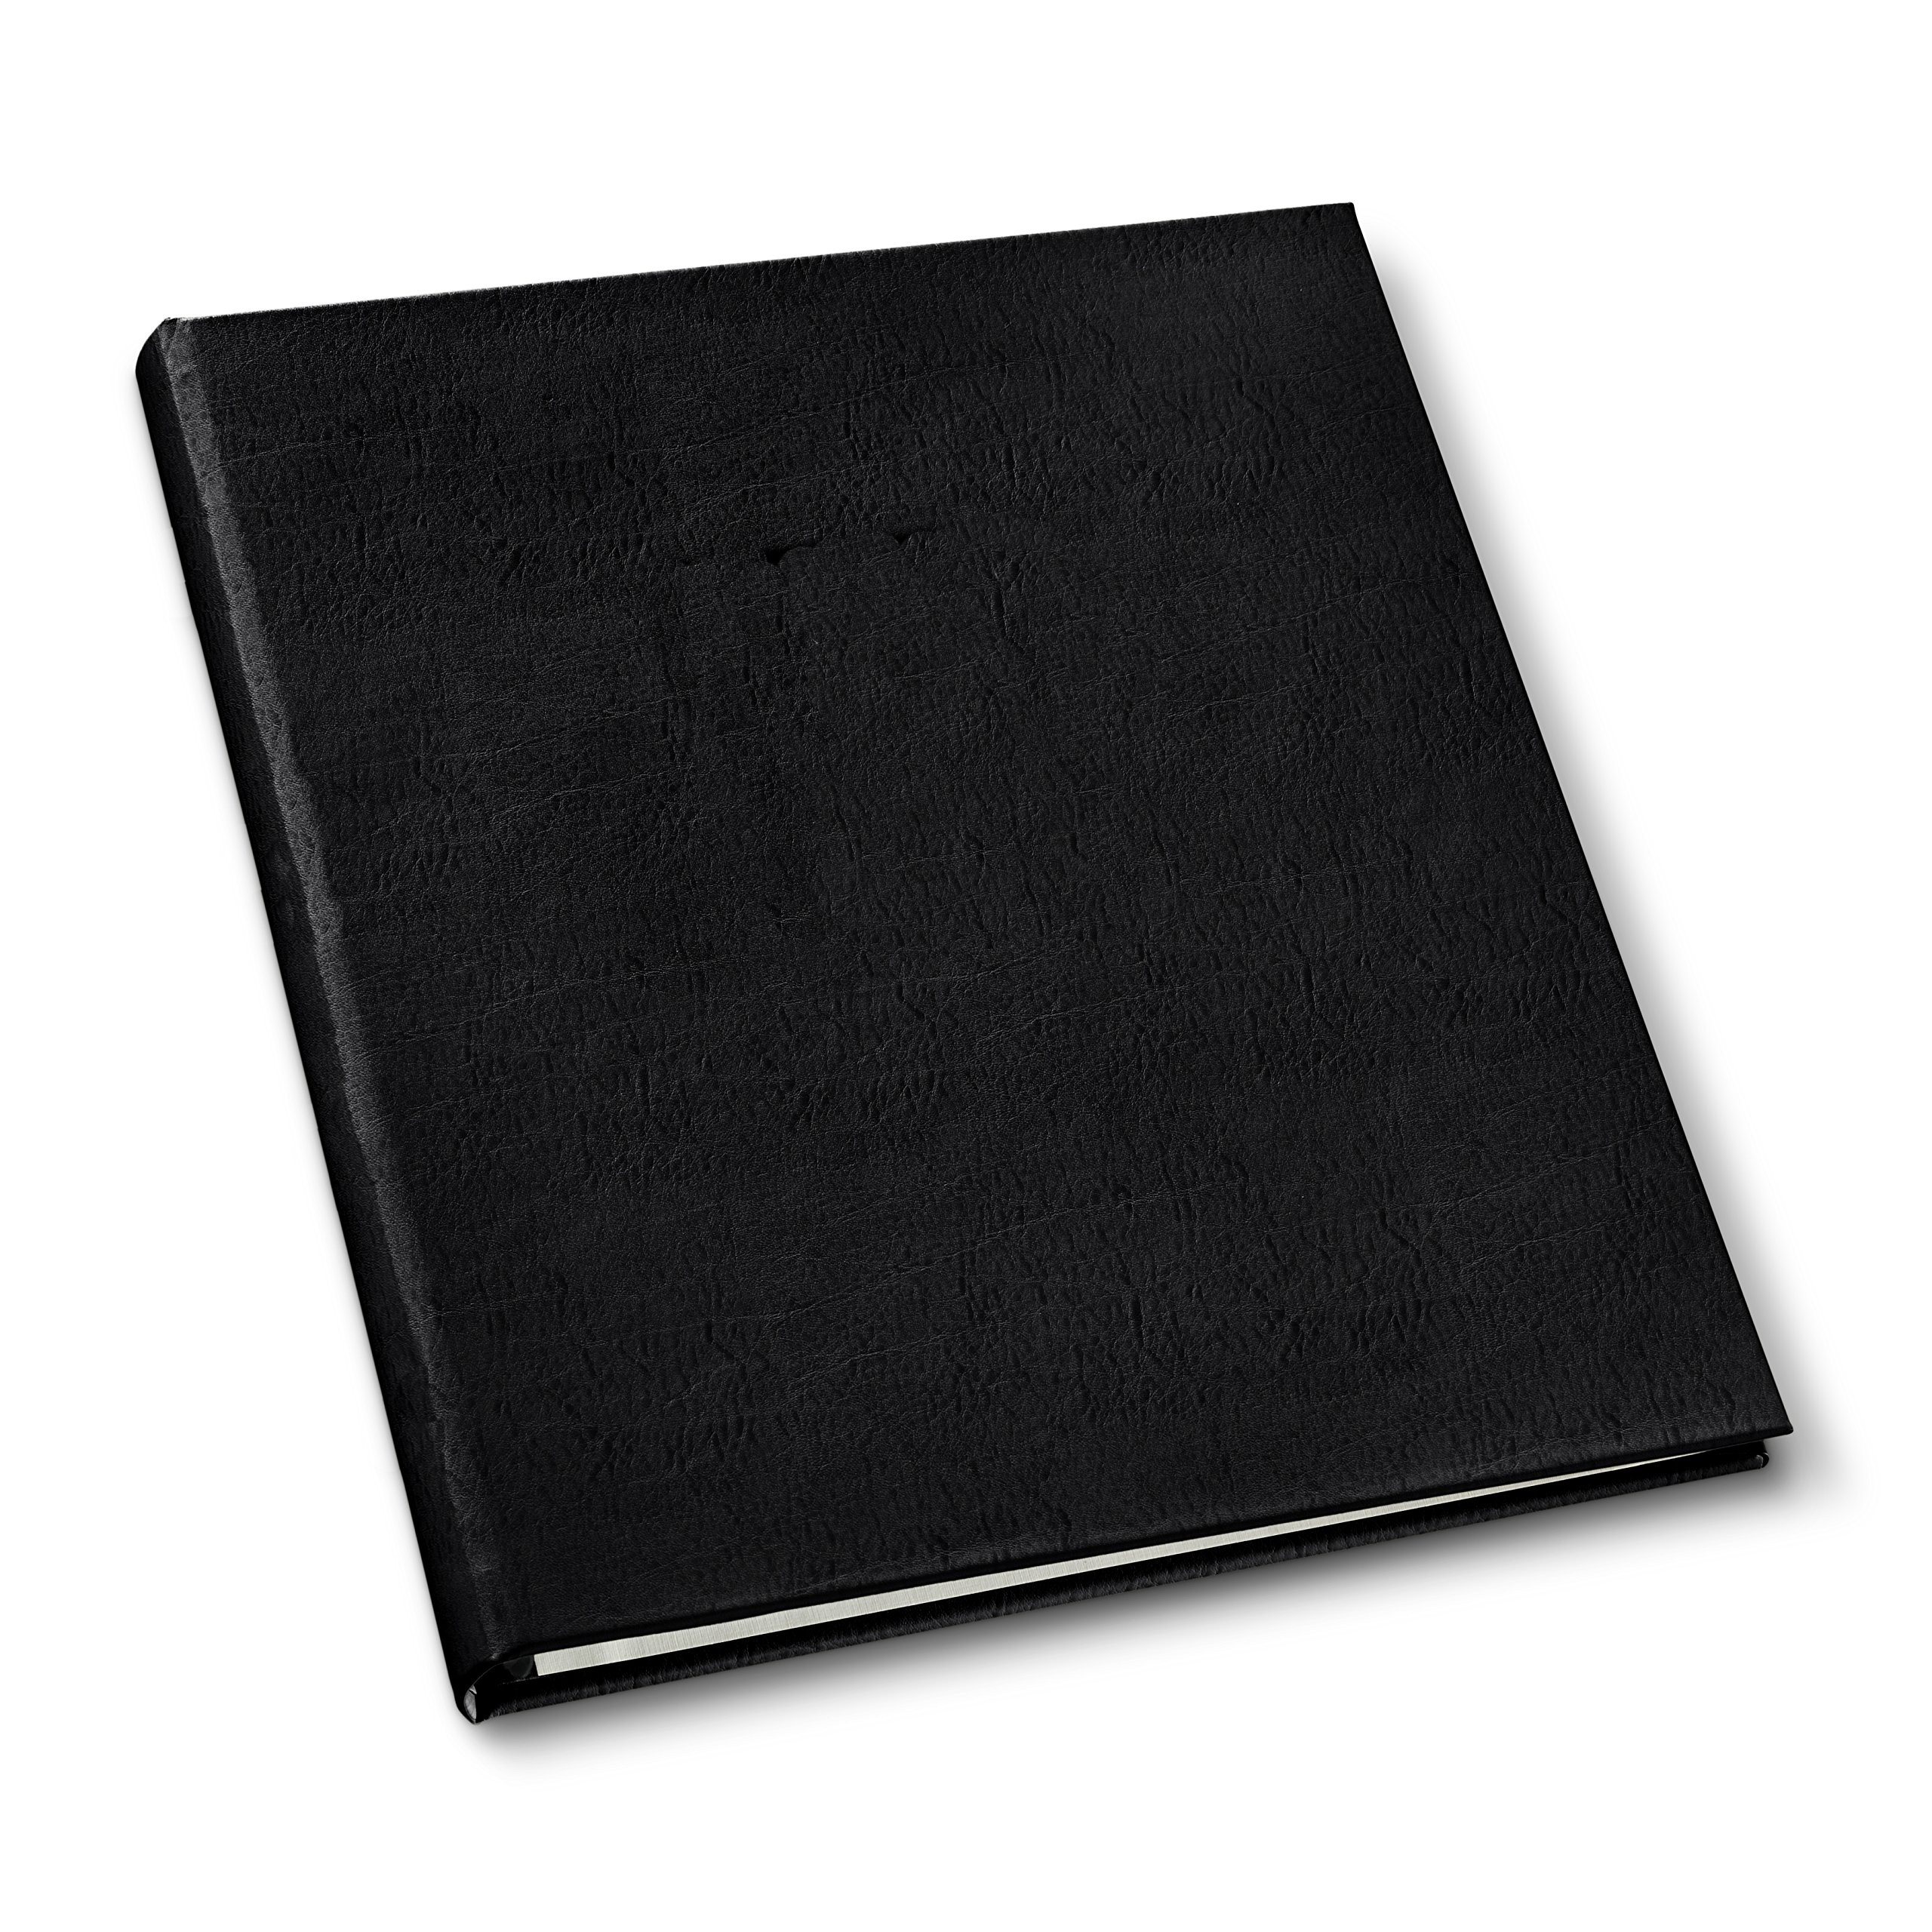 Gallery Leather Presentation Binder .75'' Freeport Black by Gallery Leather